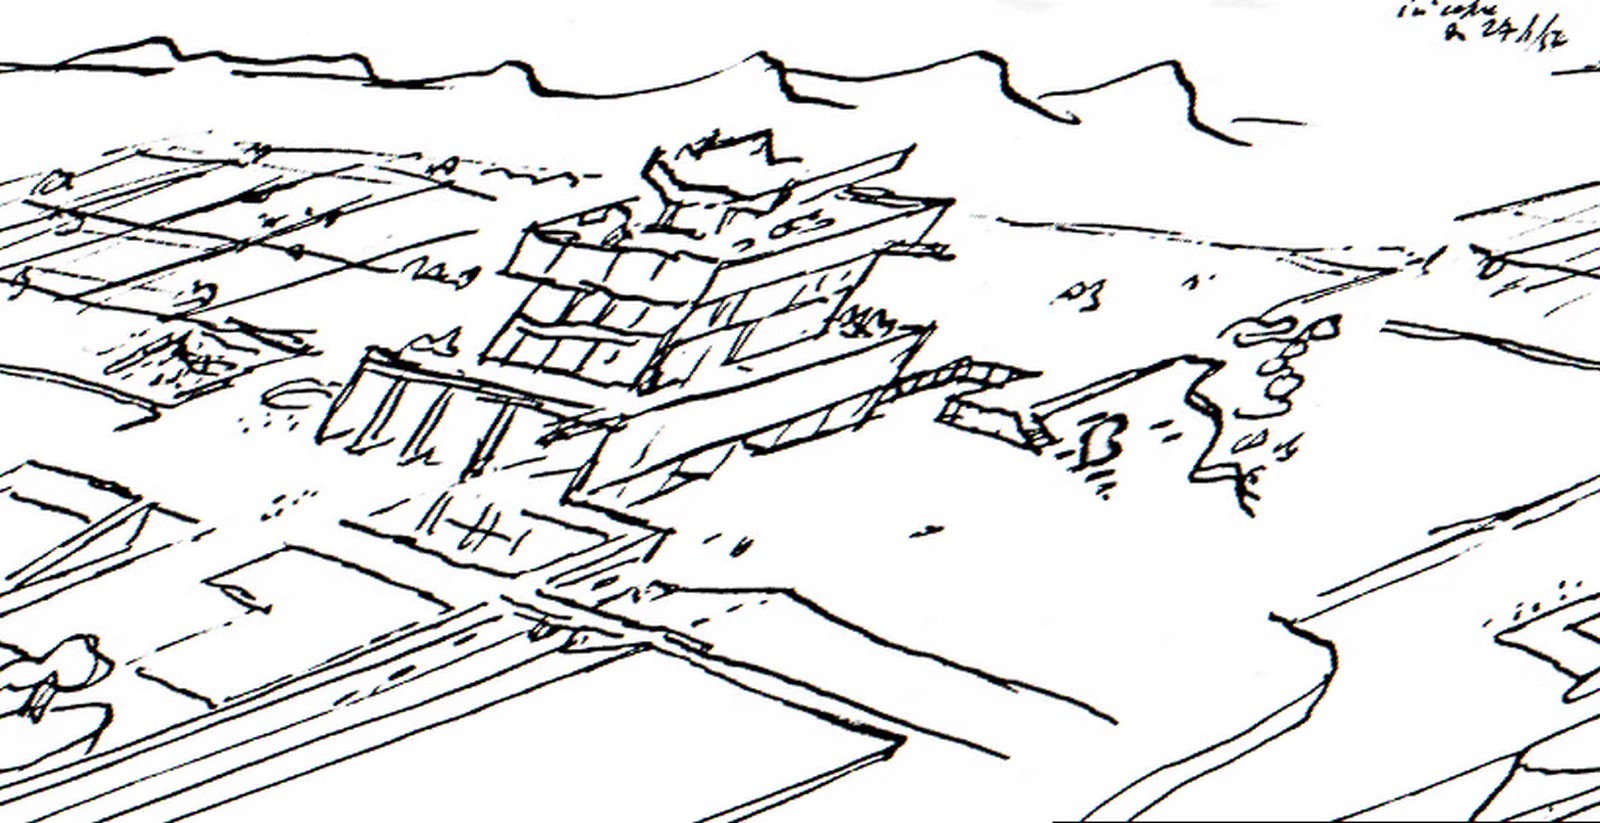 Architecture of Indian Cities: Chandigarh- Well Planned city of India - Sheet3